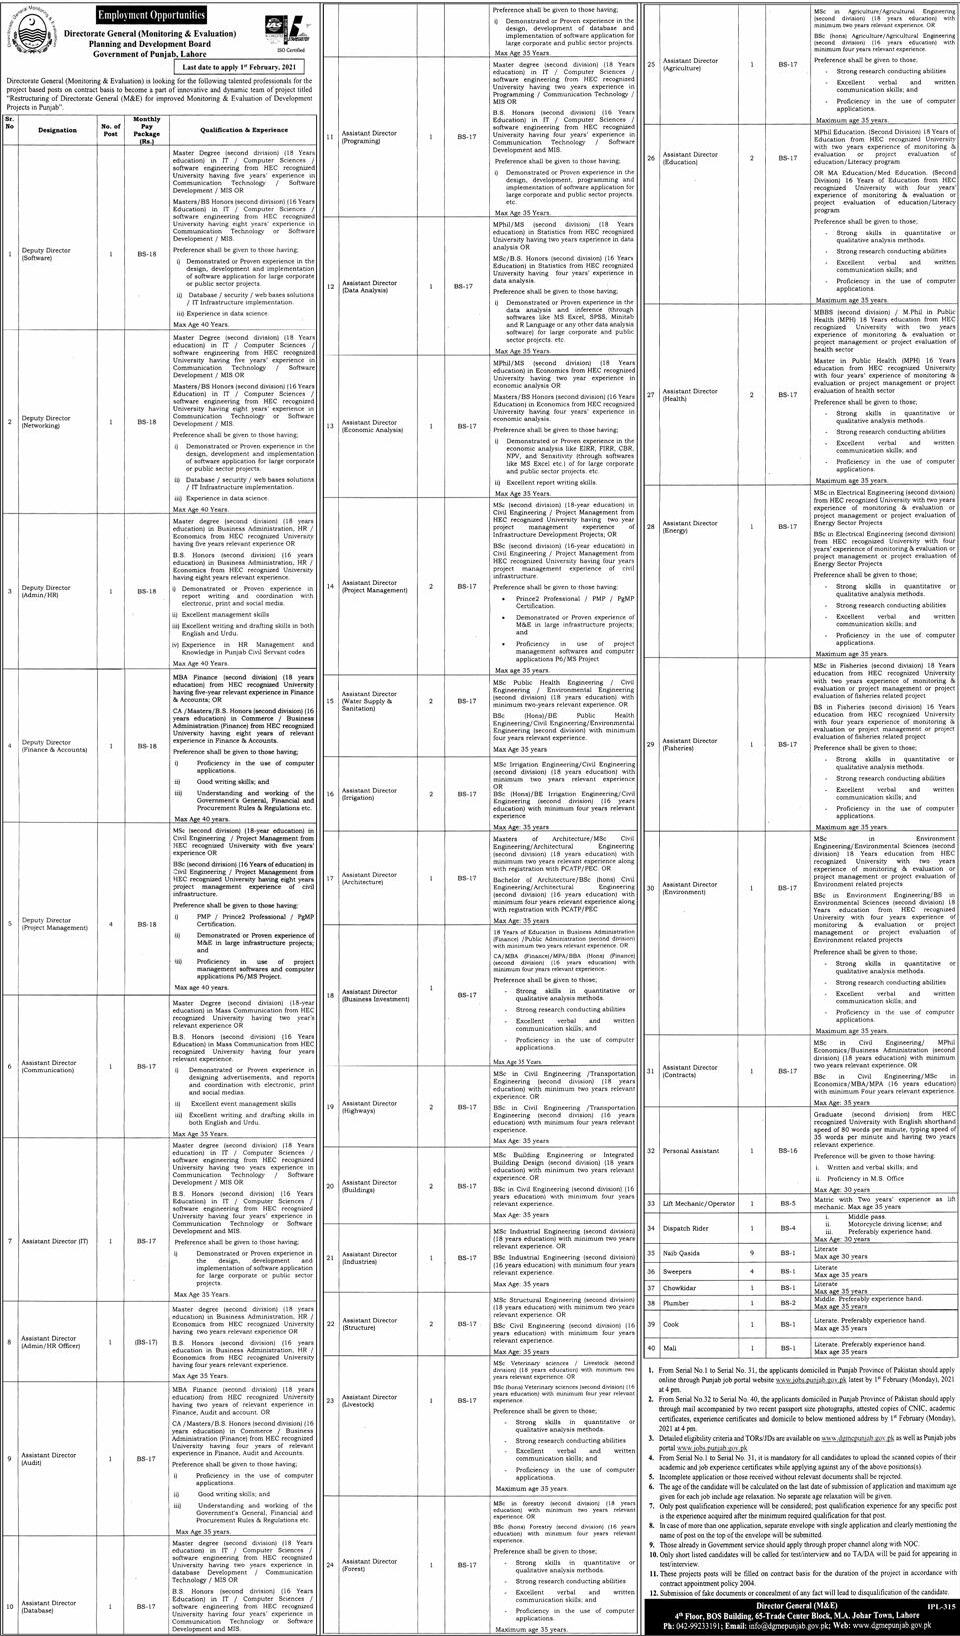 Director General (Monitoring & Evaluation) Planning and Development board Jobs